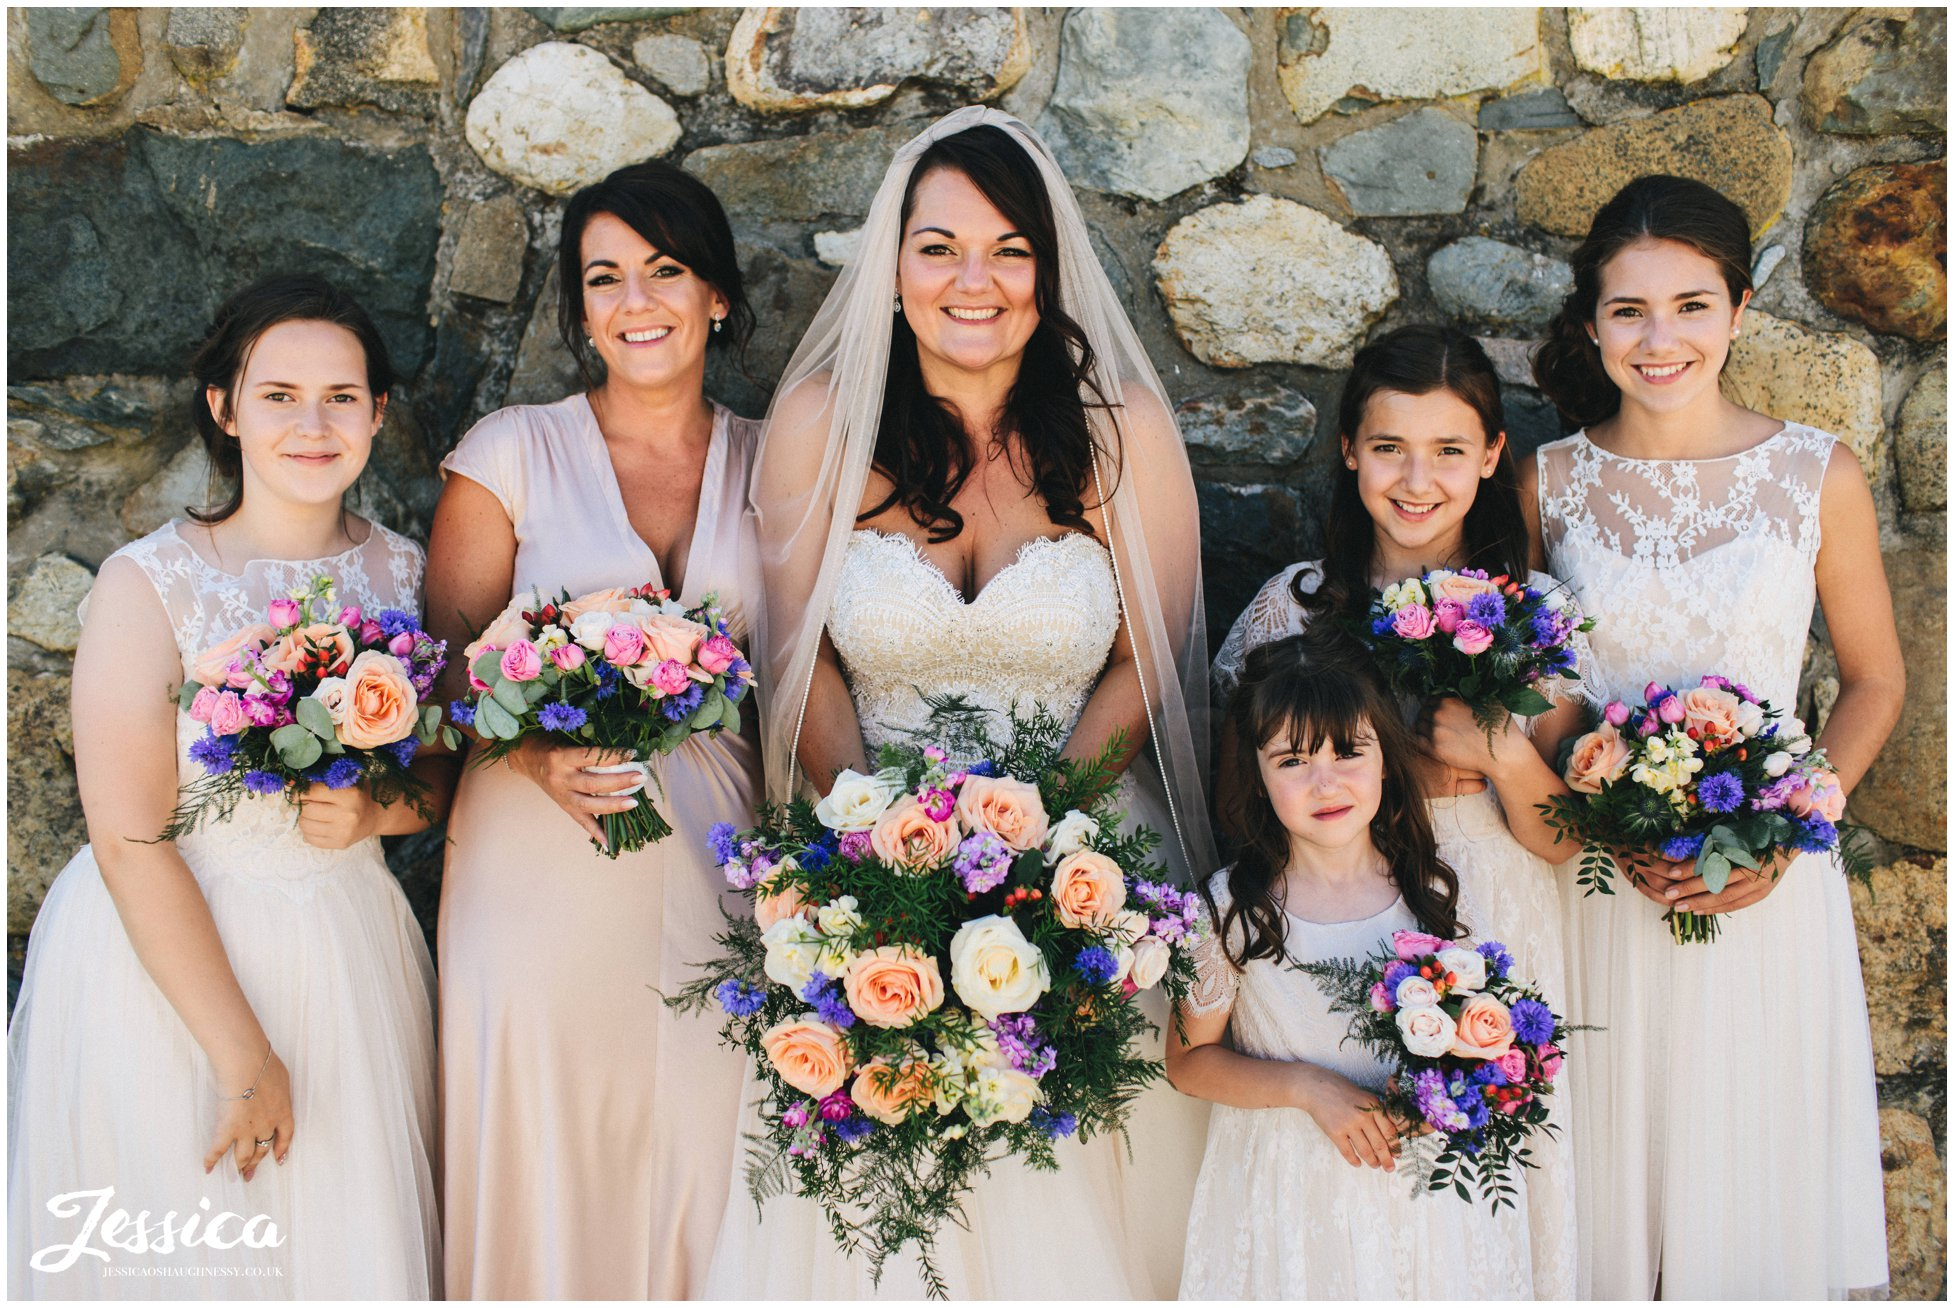 bride poses with her bridesmaids at her bach wen wedding